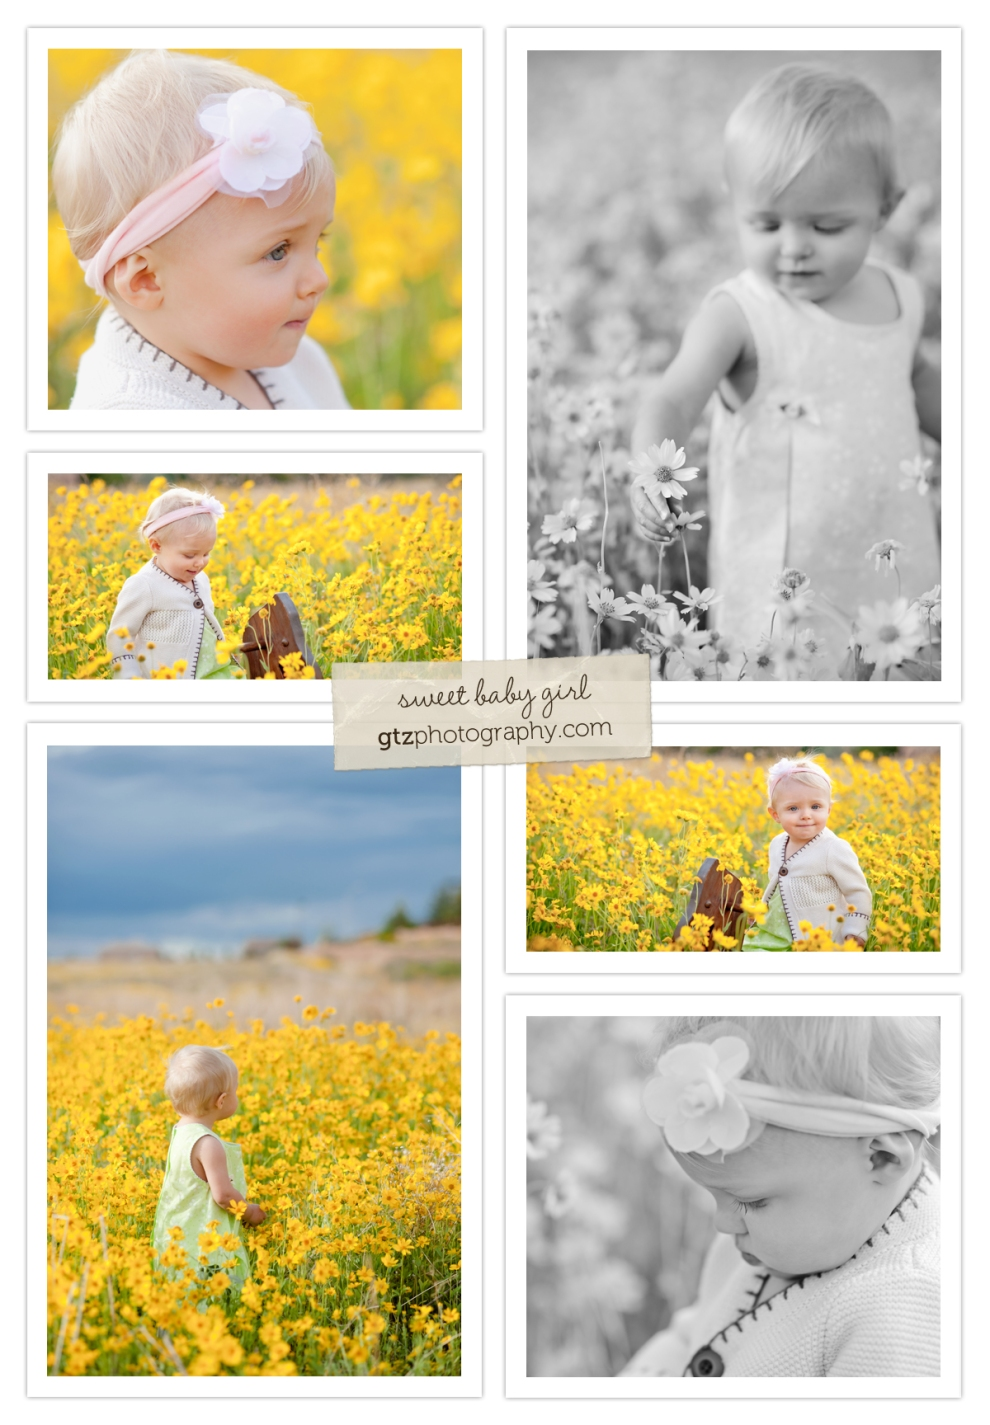 Baby girl in a field of yellow flowers, with a rocking horse